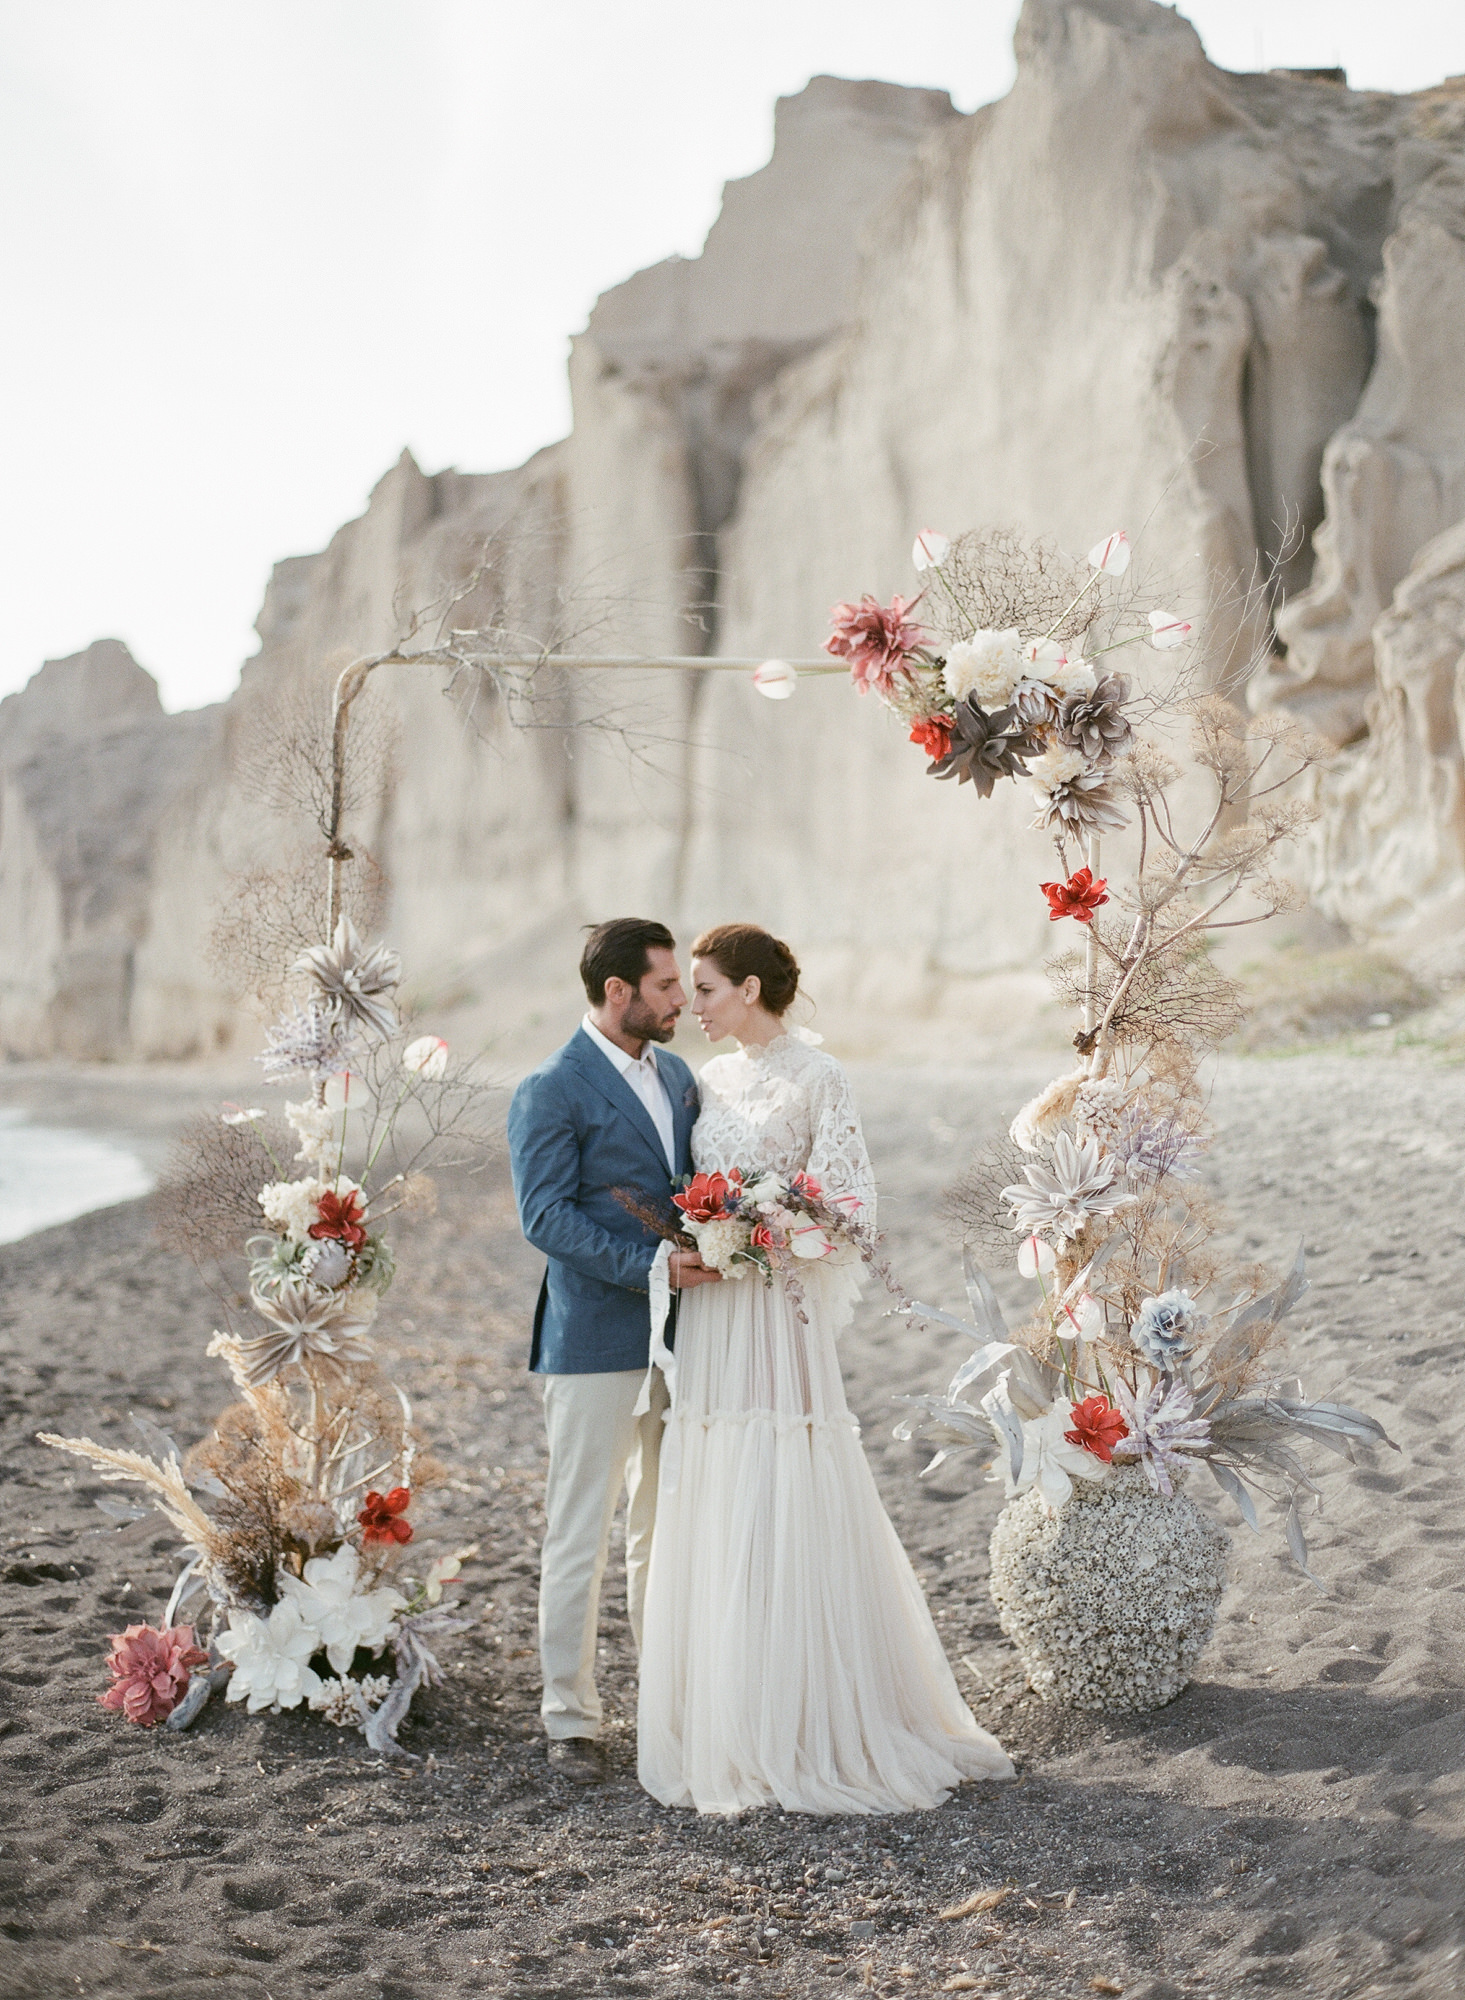 Couple under floral arbor on beach  - photo by Gianluca Adovasio Photography